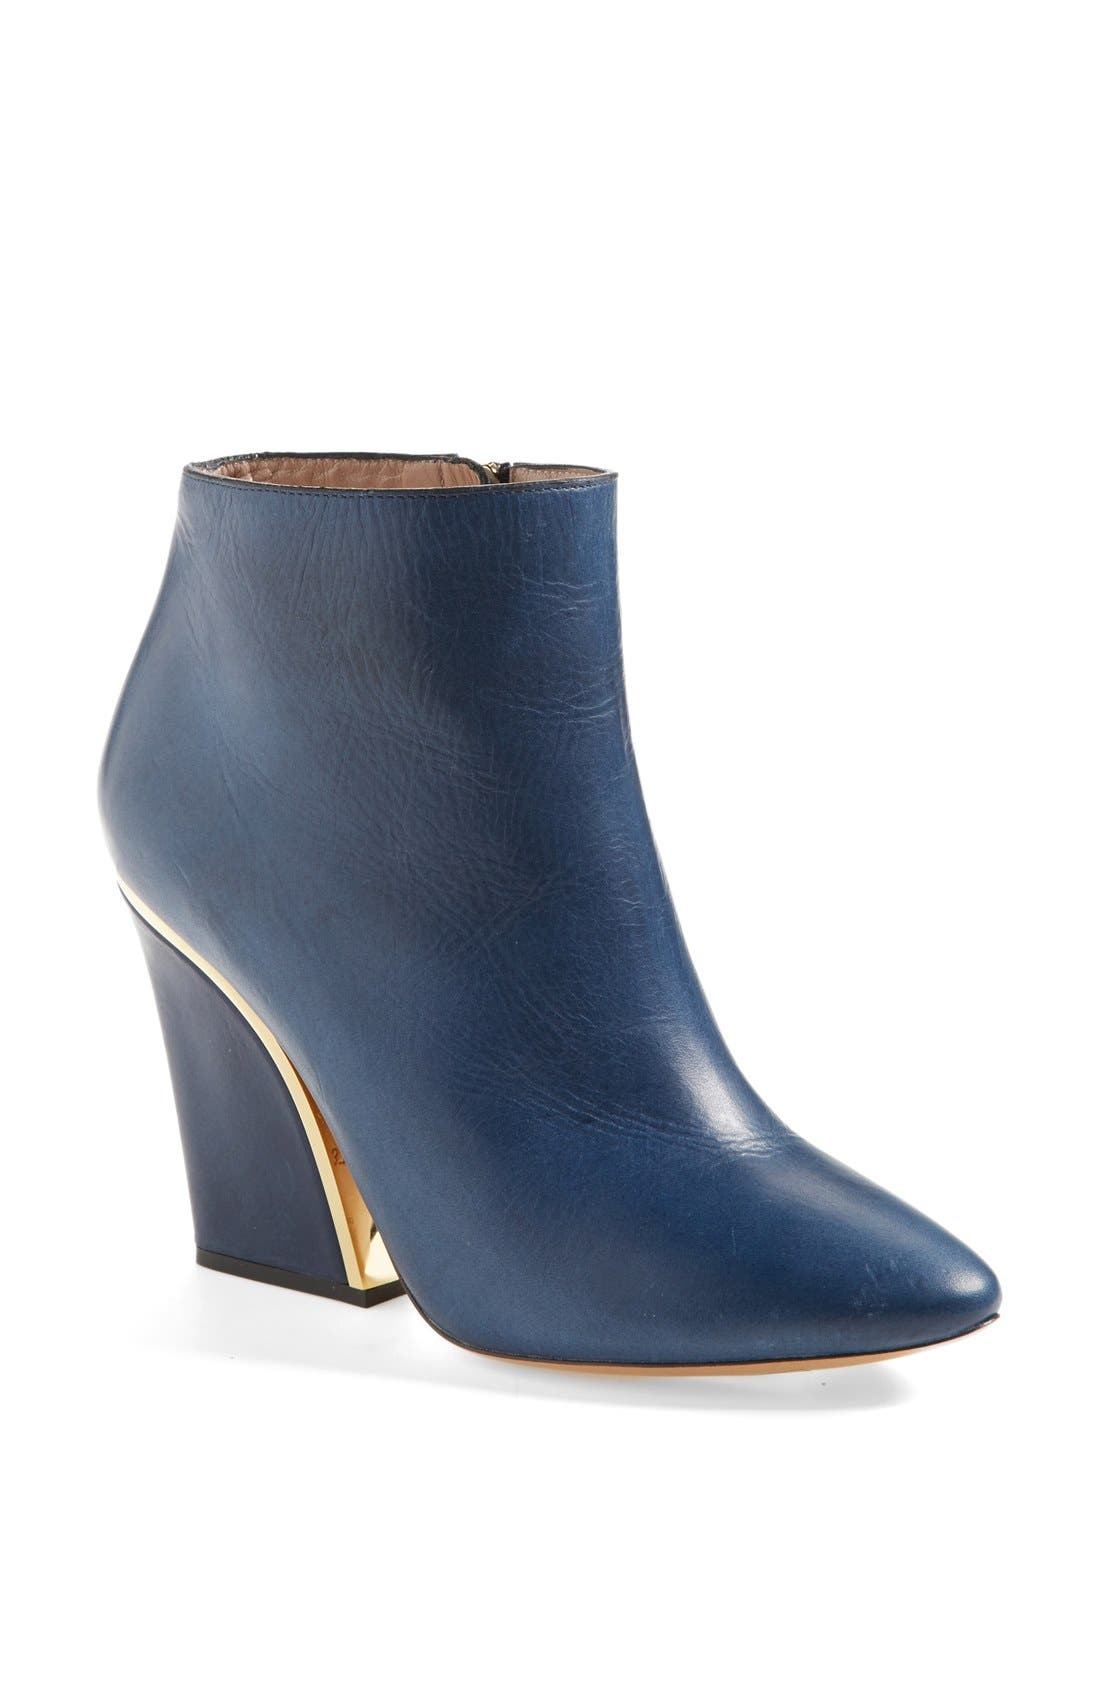 Alternate Image 1 Selected - Chloé 'Beckie' Sculpted Heel Bootie